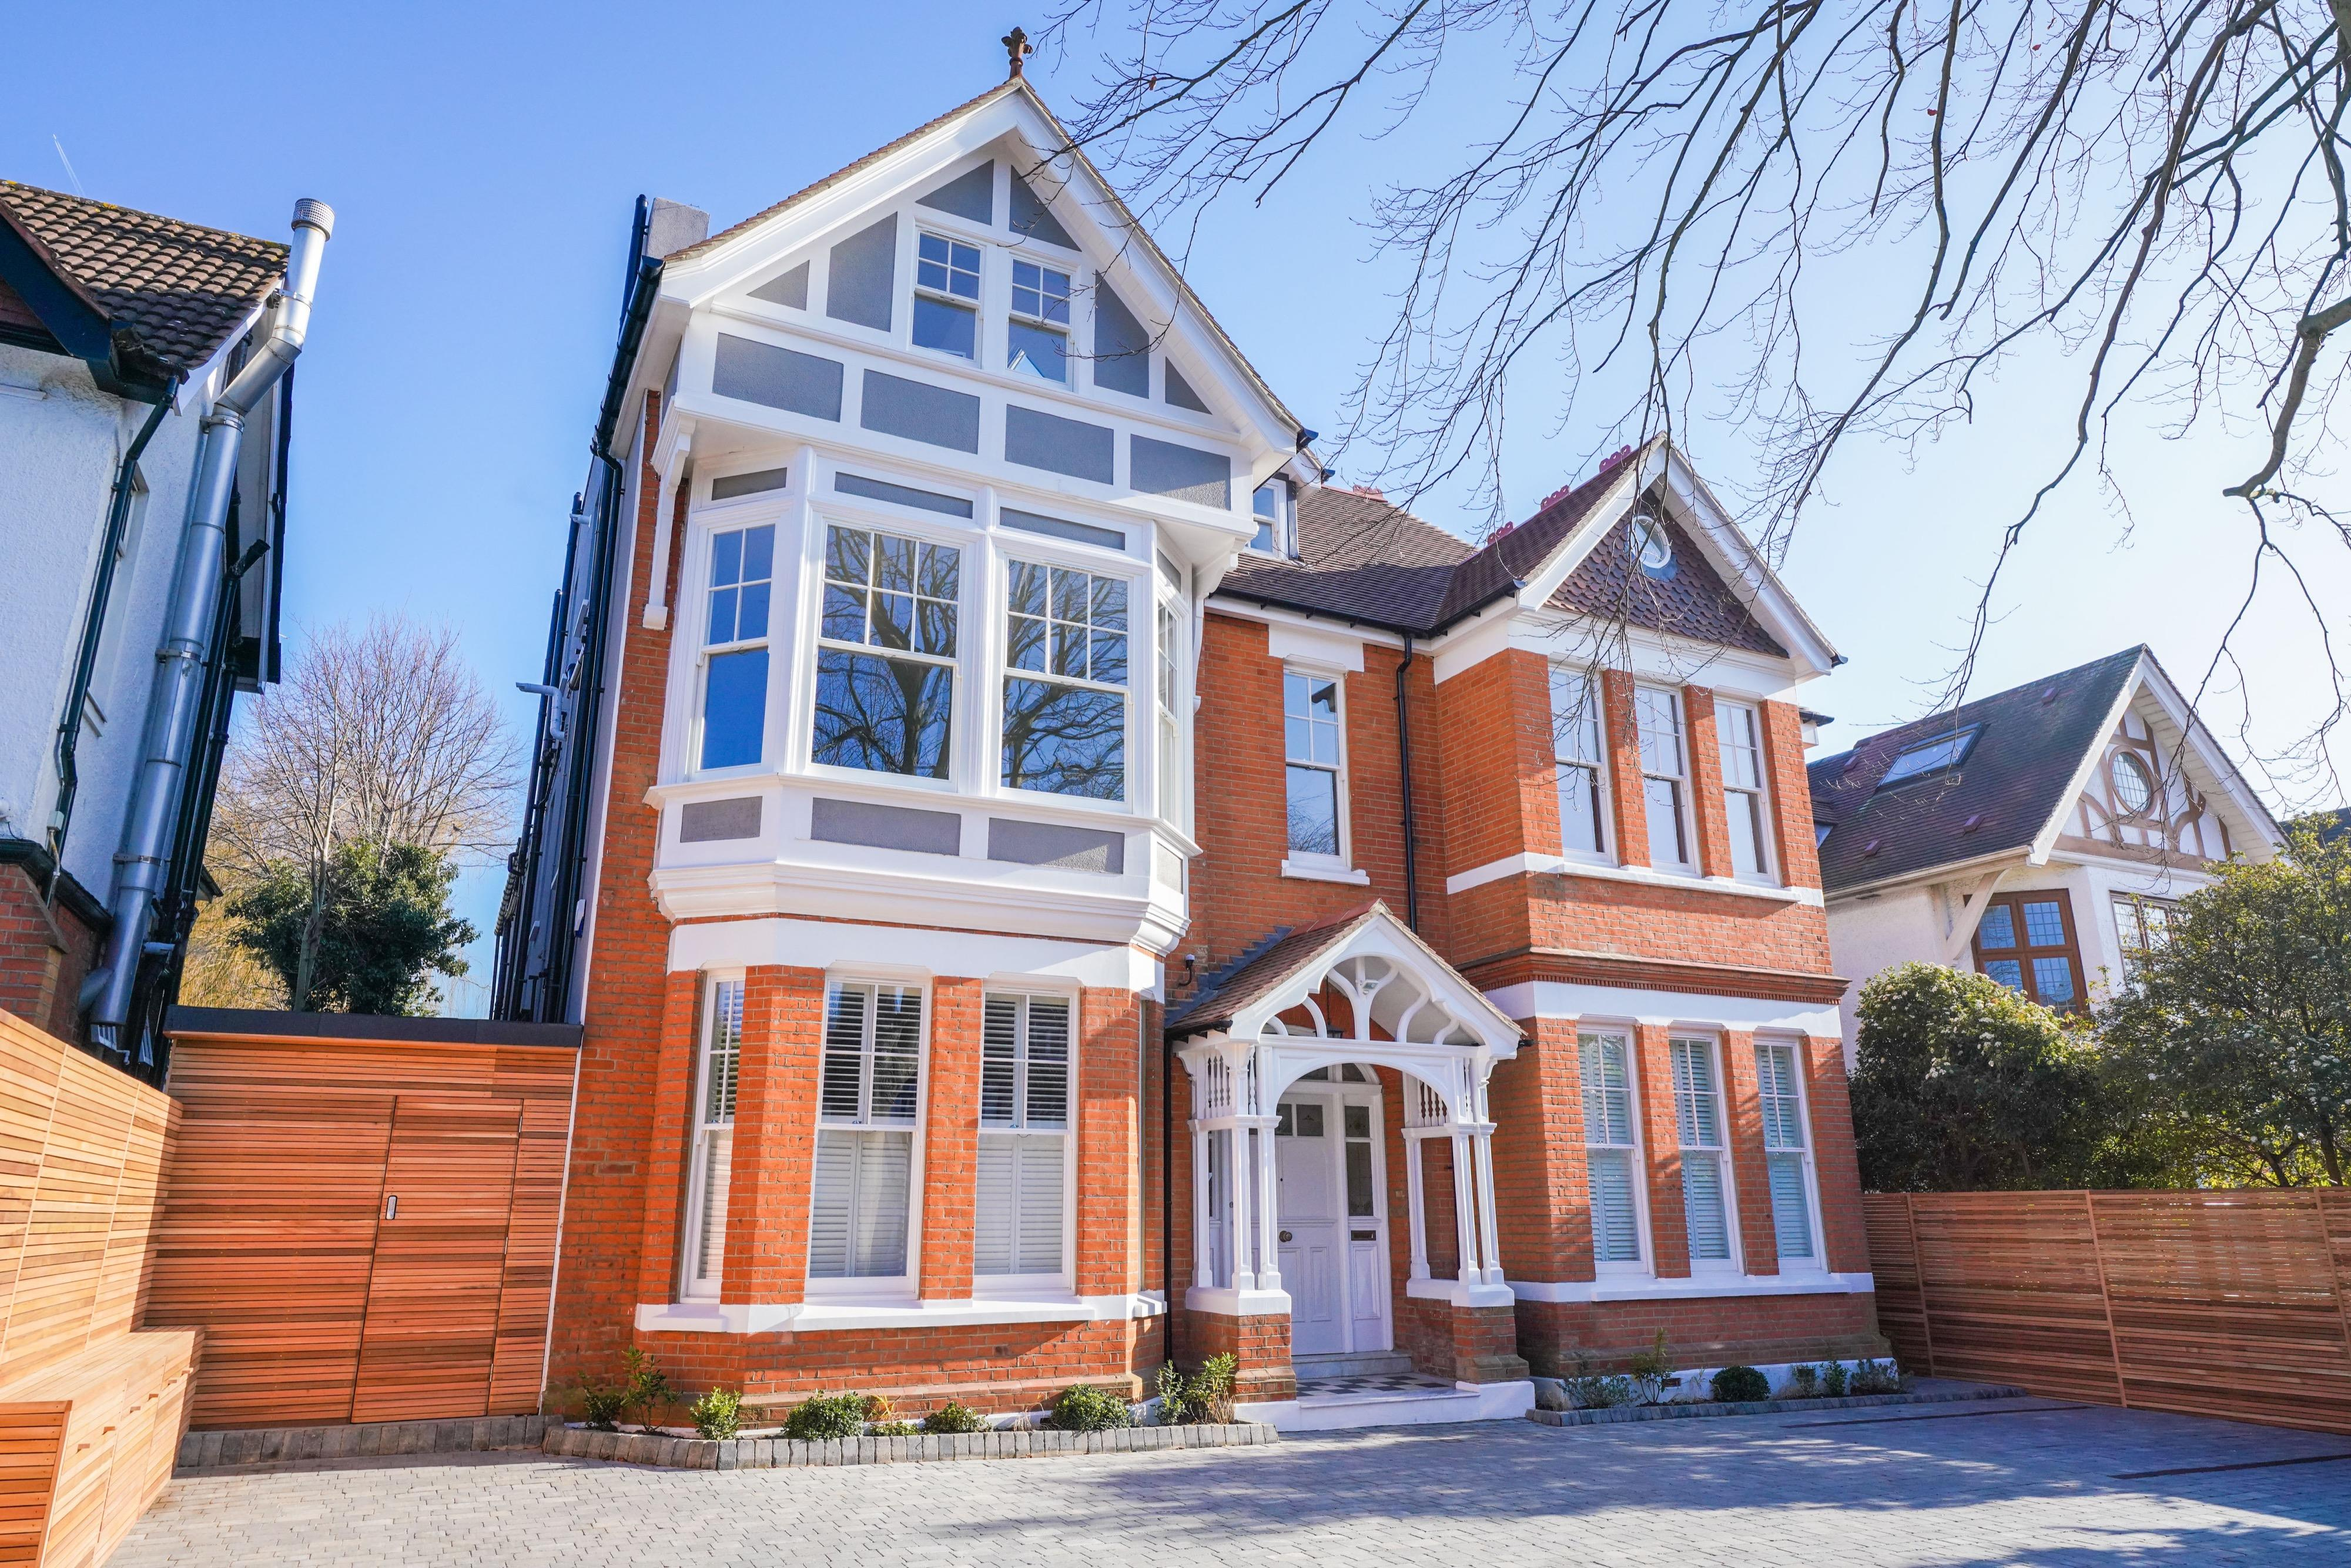 Sold - Corfton Road W5